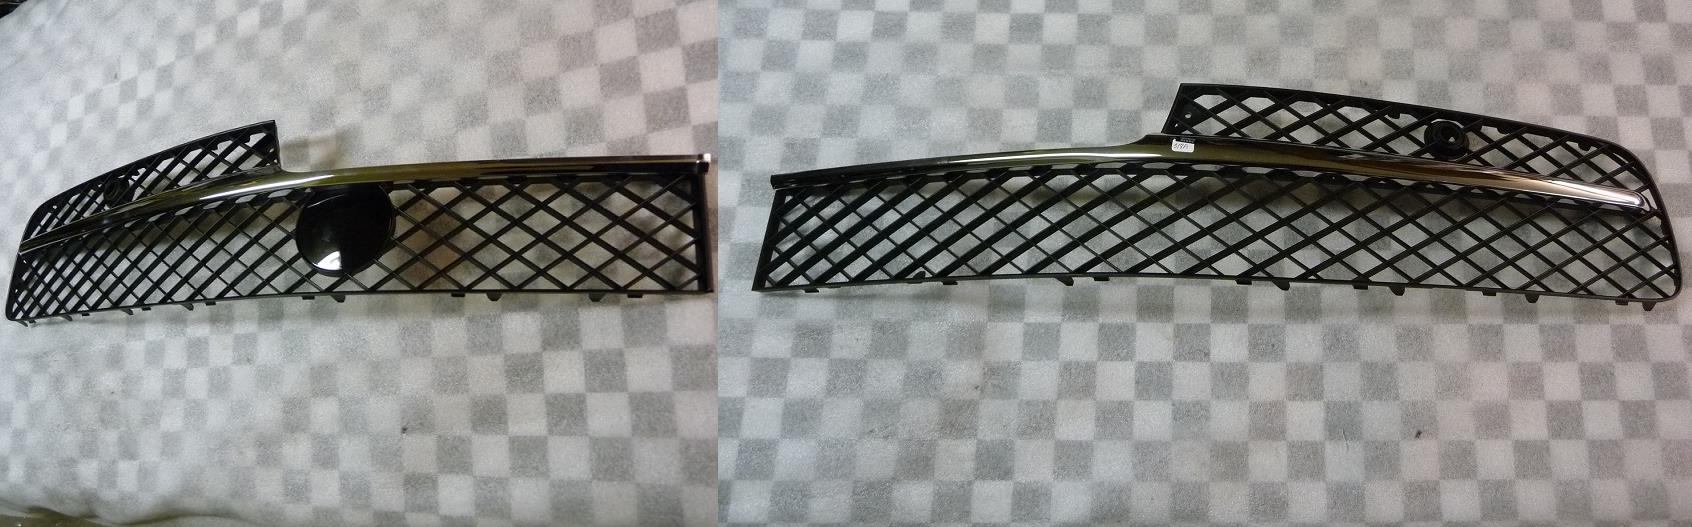 Bentley Flying Spur Front Bumper Lower Grille Left & Right Black Plastic Chrome  - Used Auto Parts Store | LA Global Parts